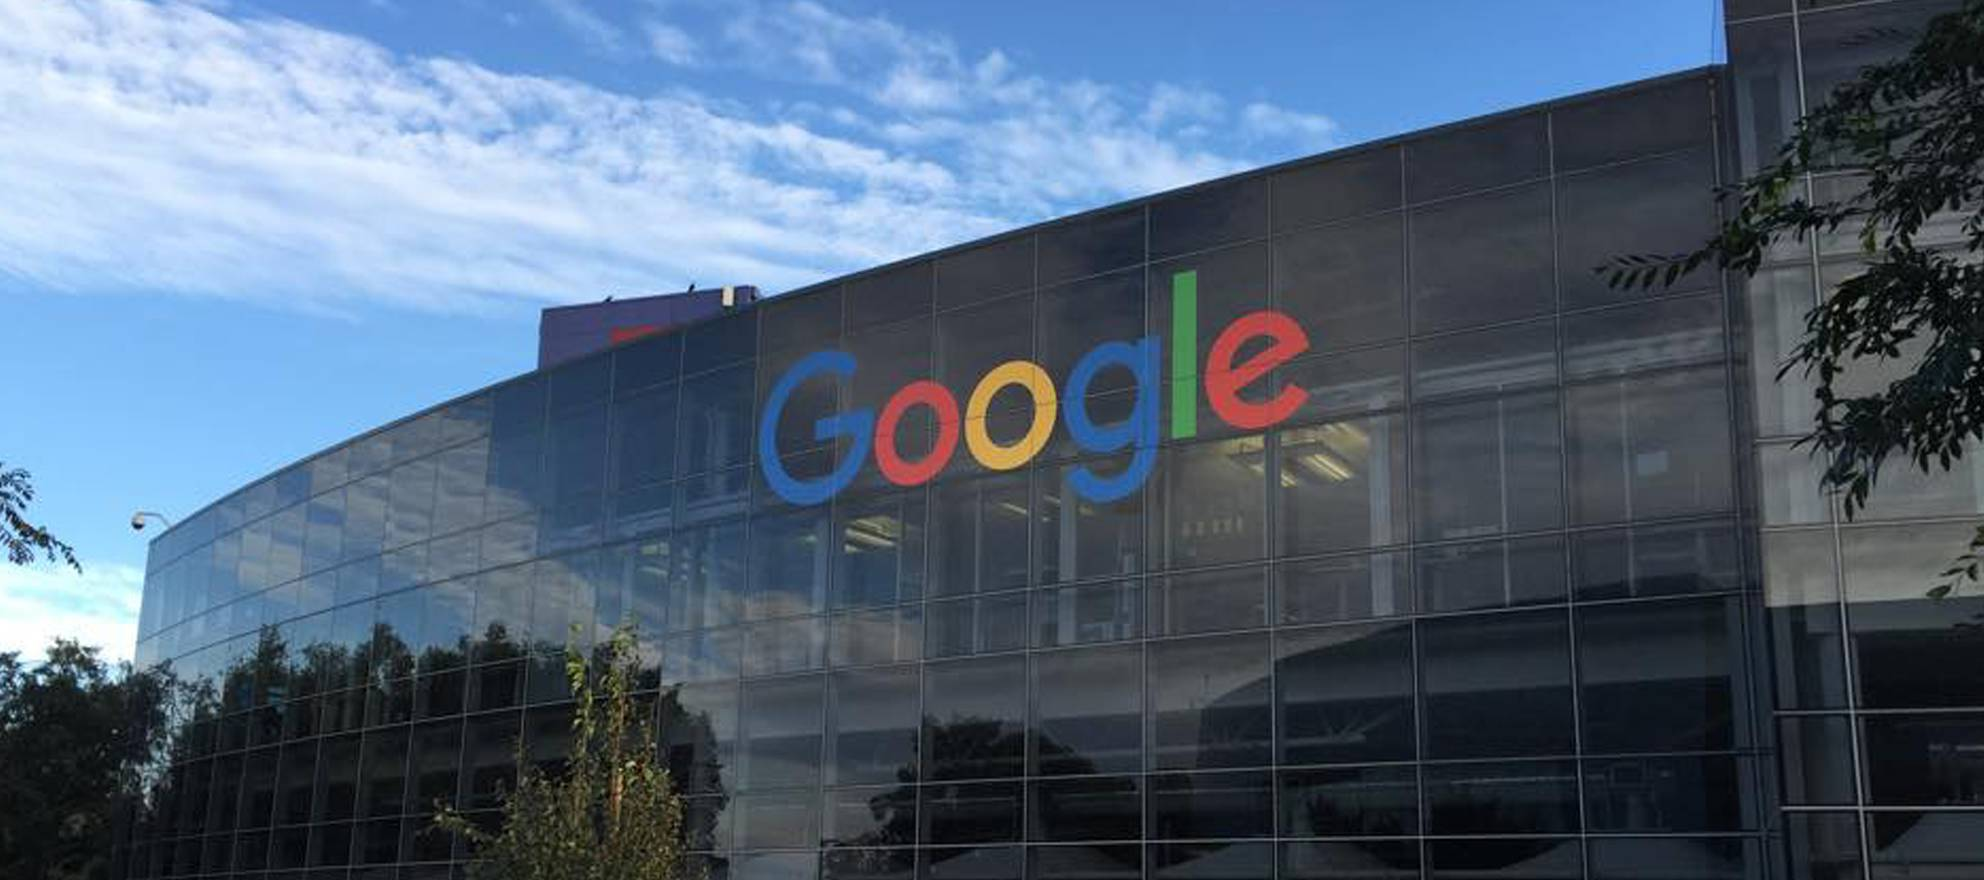 5 tips from Google for real estate agents